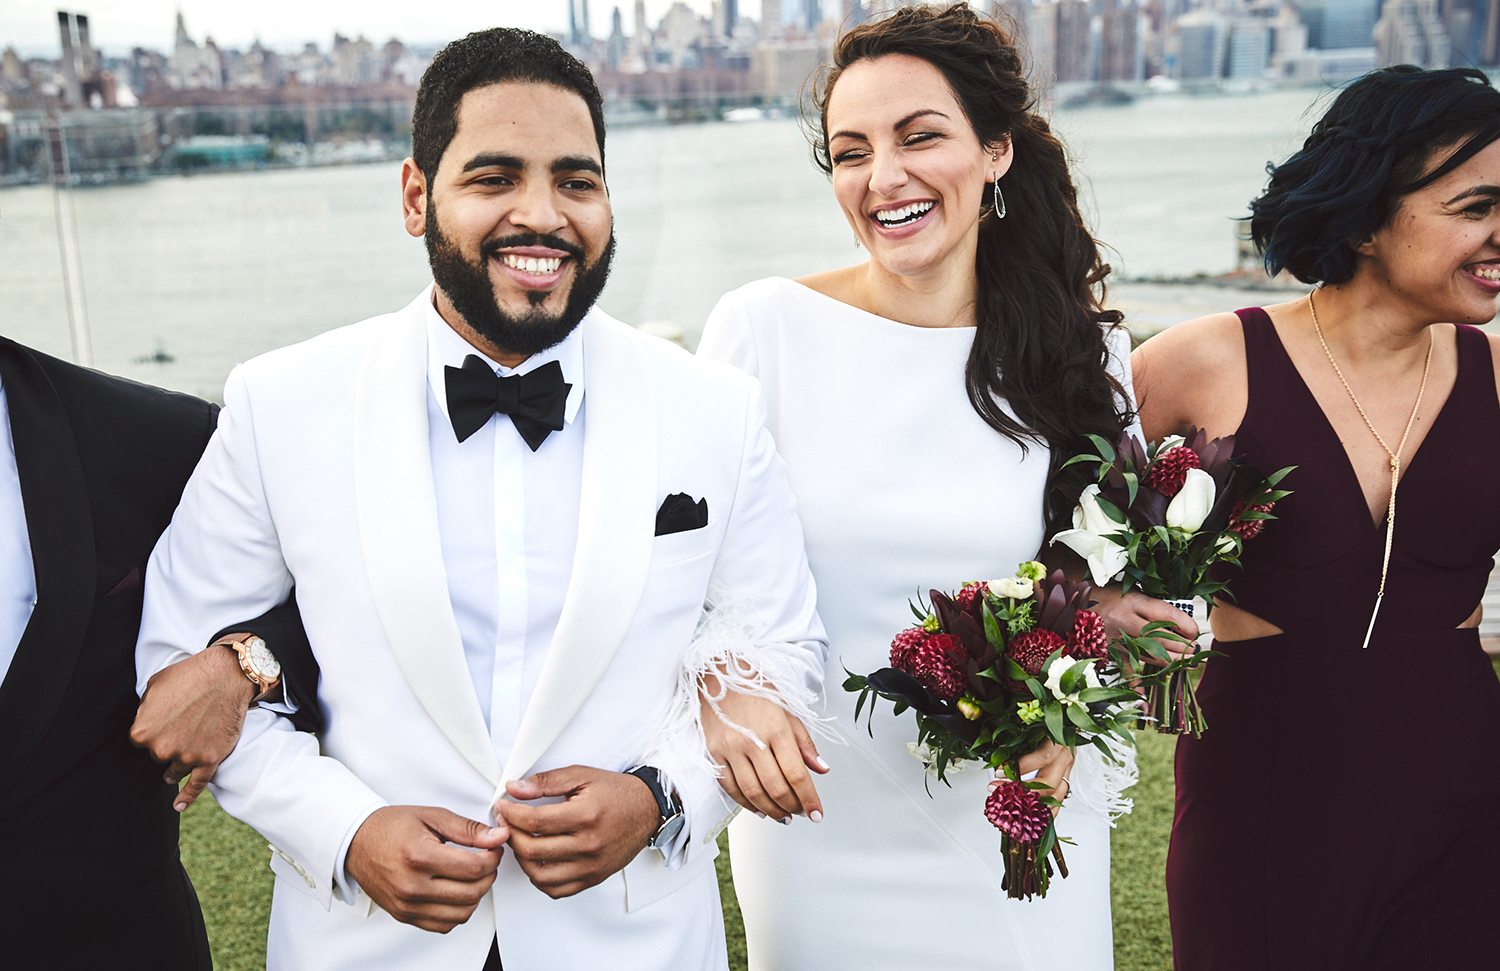 170930_WilliamValeWeddingPhotography_BrooklynWeddingPhotographer_By_BriJohnsonWeddings_0104.jpg